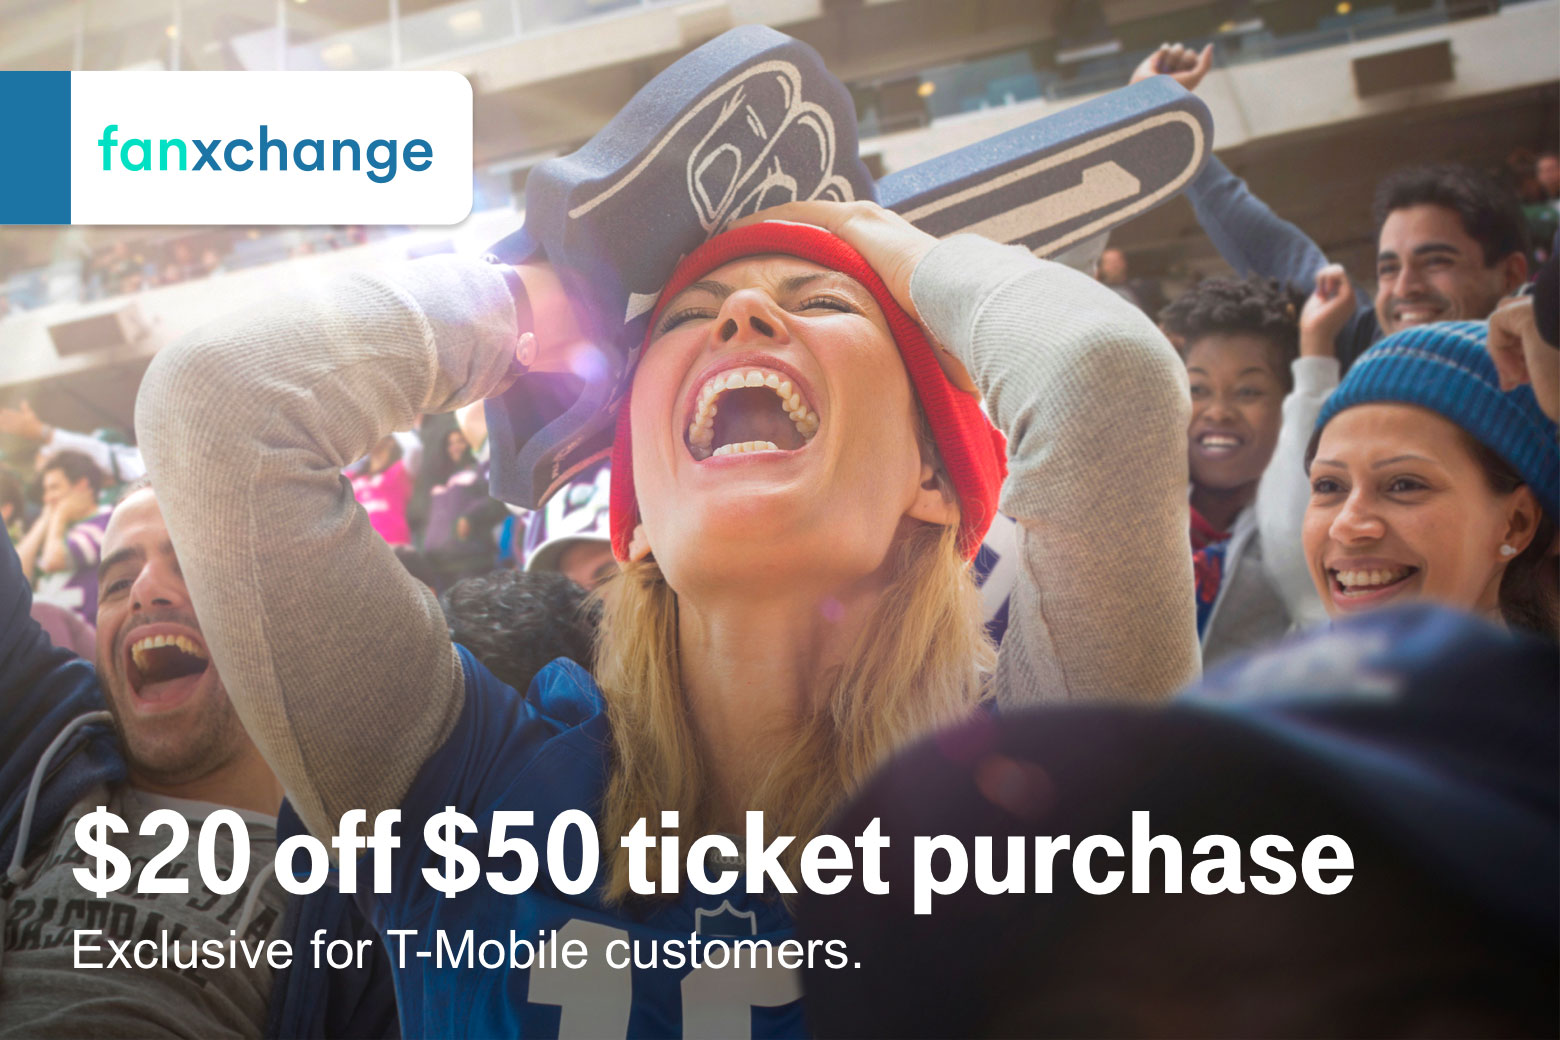 Fanxchange. Twenty dollars off fifty dollar ticket purchase. Exclusive for T-Mobile customers.